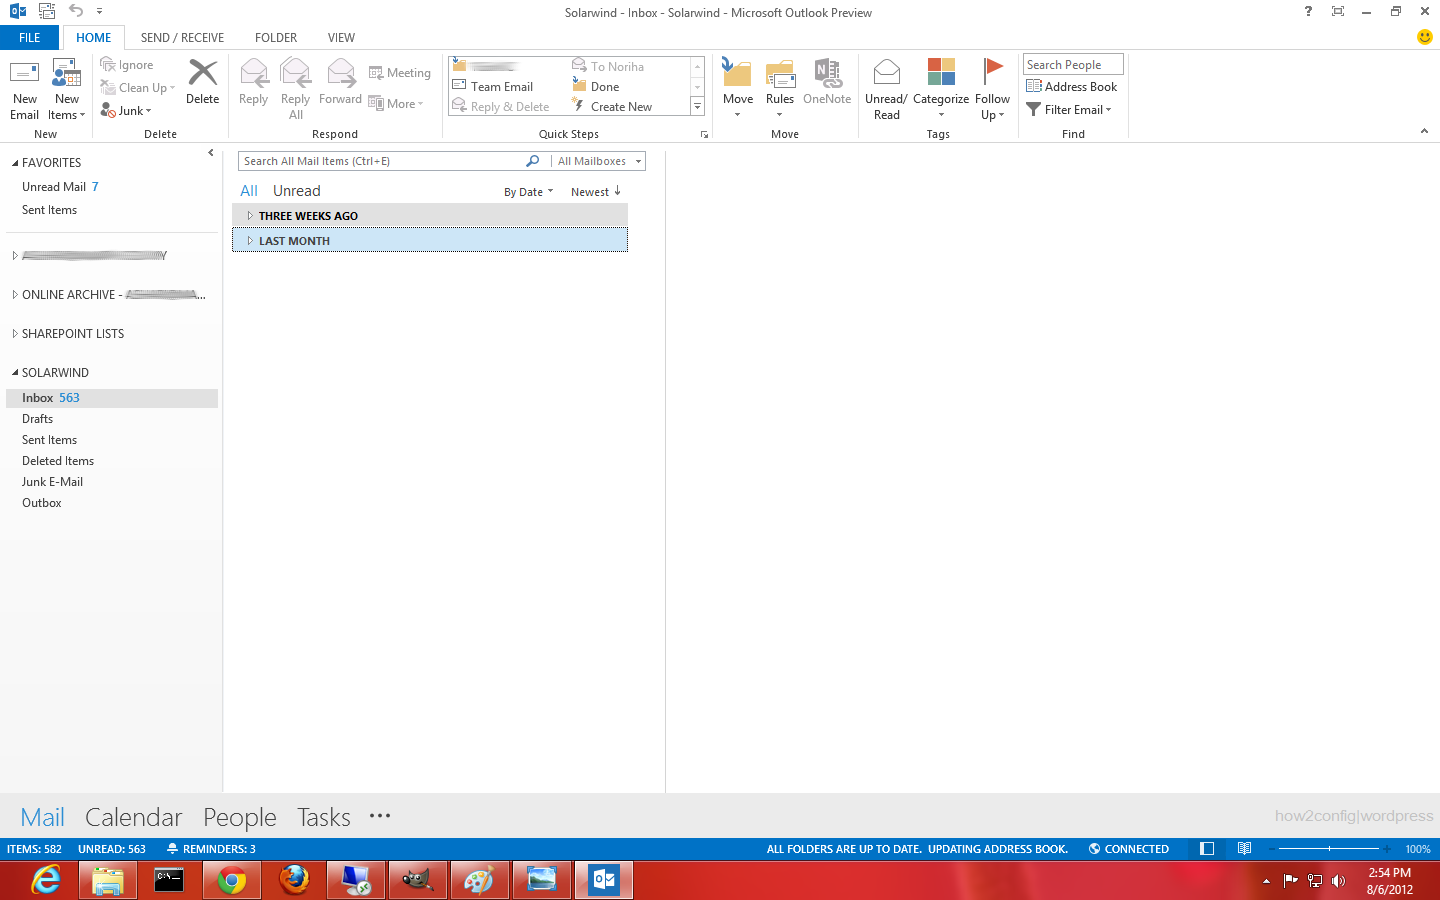 How to Configure Mail Exchange using Microsoft Outlook 2013 in Windows 8